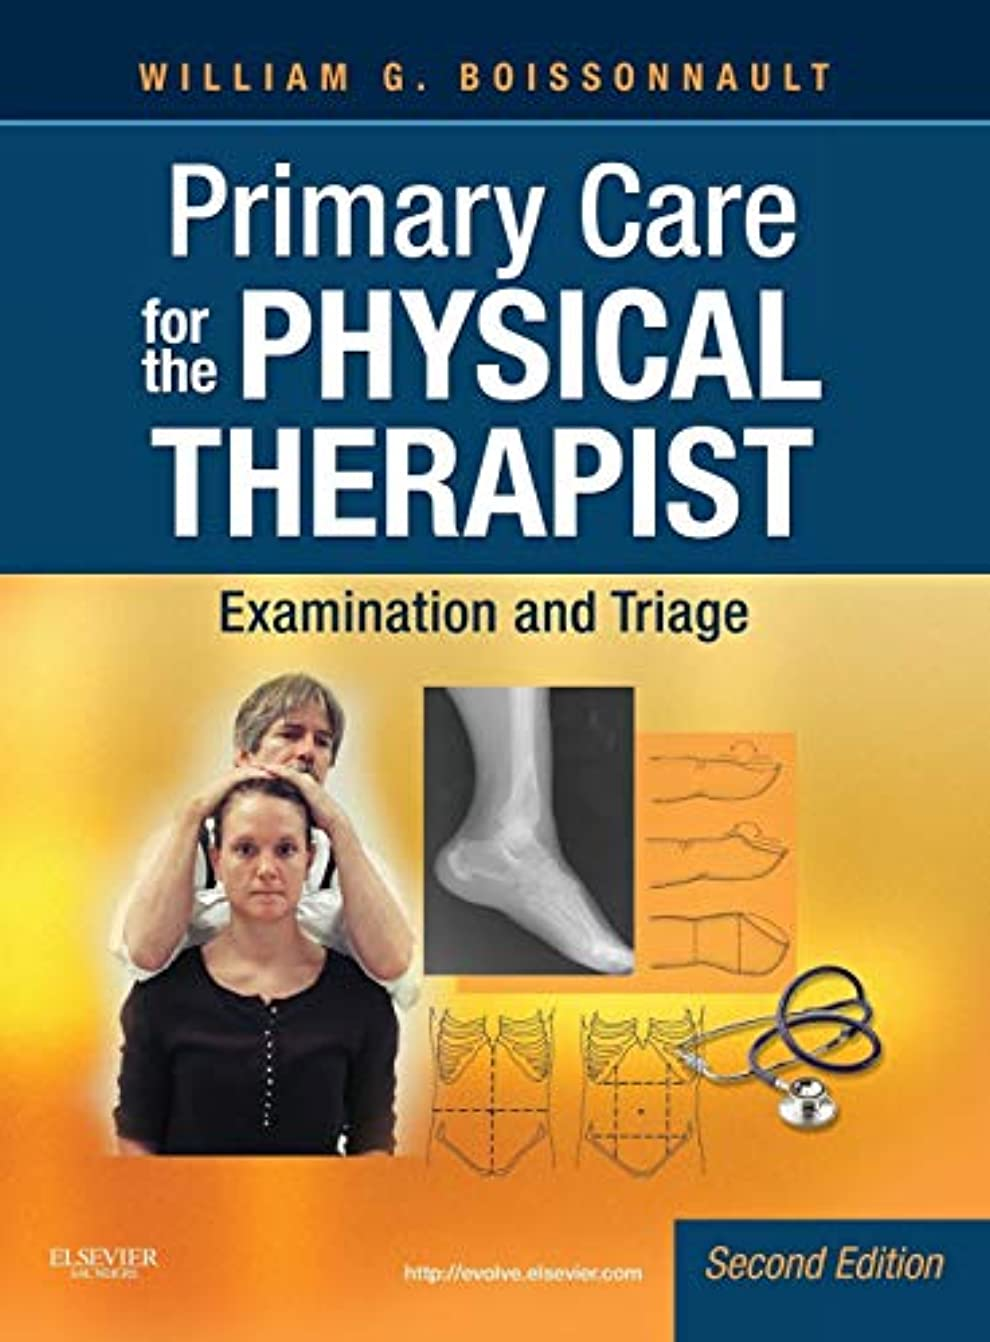 誓う枢機卿寄り添うPrimary Care for the Physical Therapist: Examination and Triage, 2e